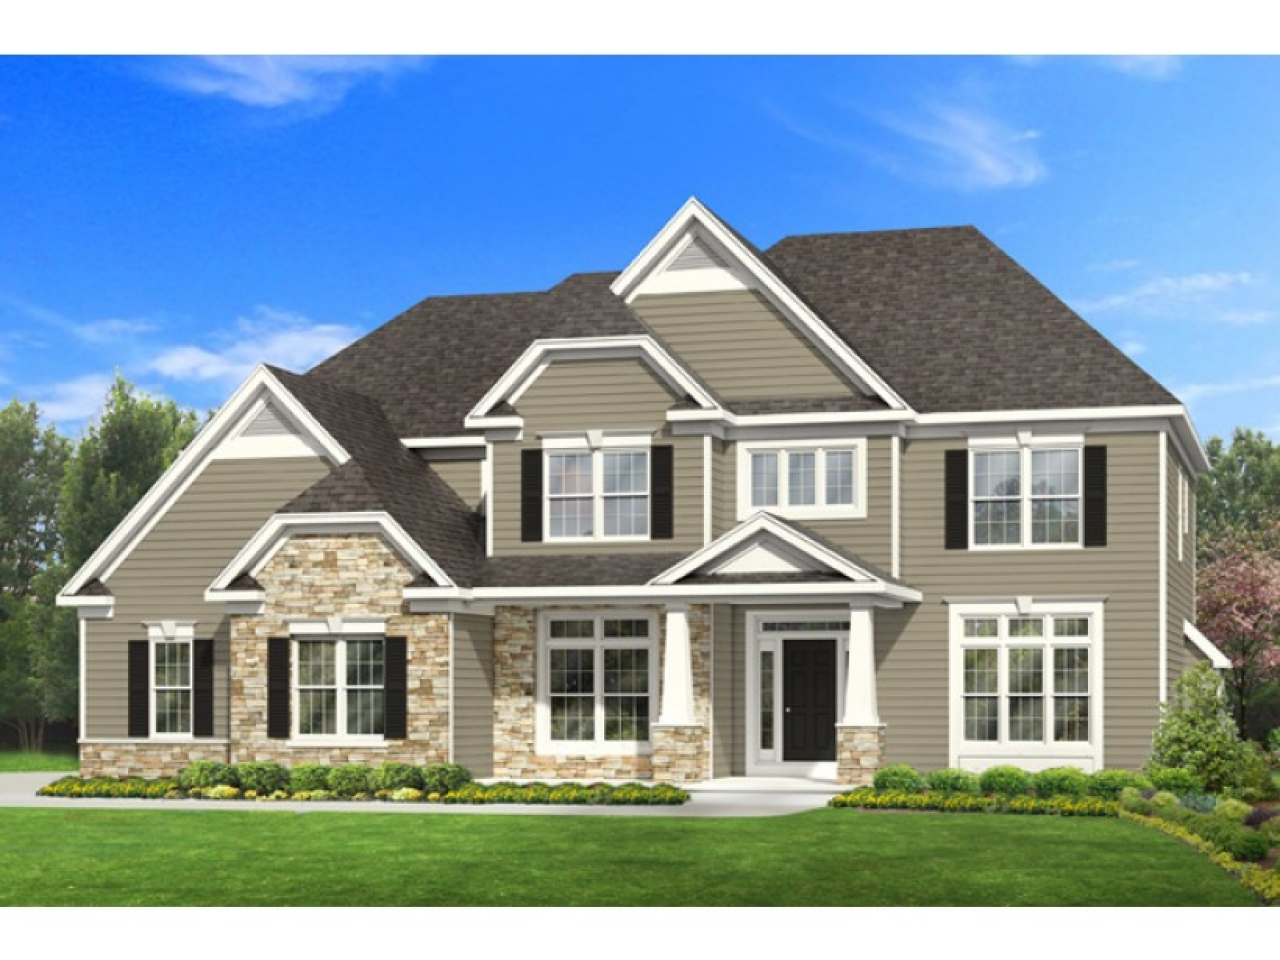 Long lots blueprints 3 bedroom 1 story 2 story 4 bedroom for Four bedroom single story house plans